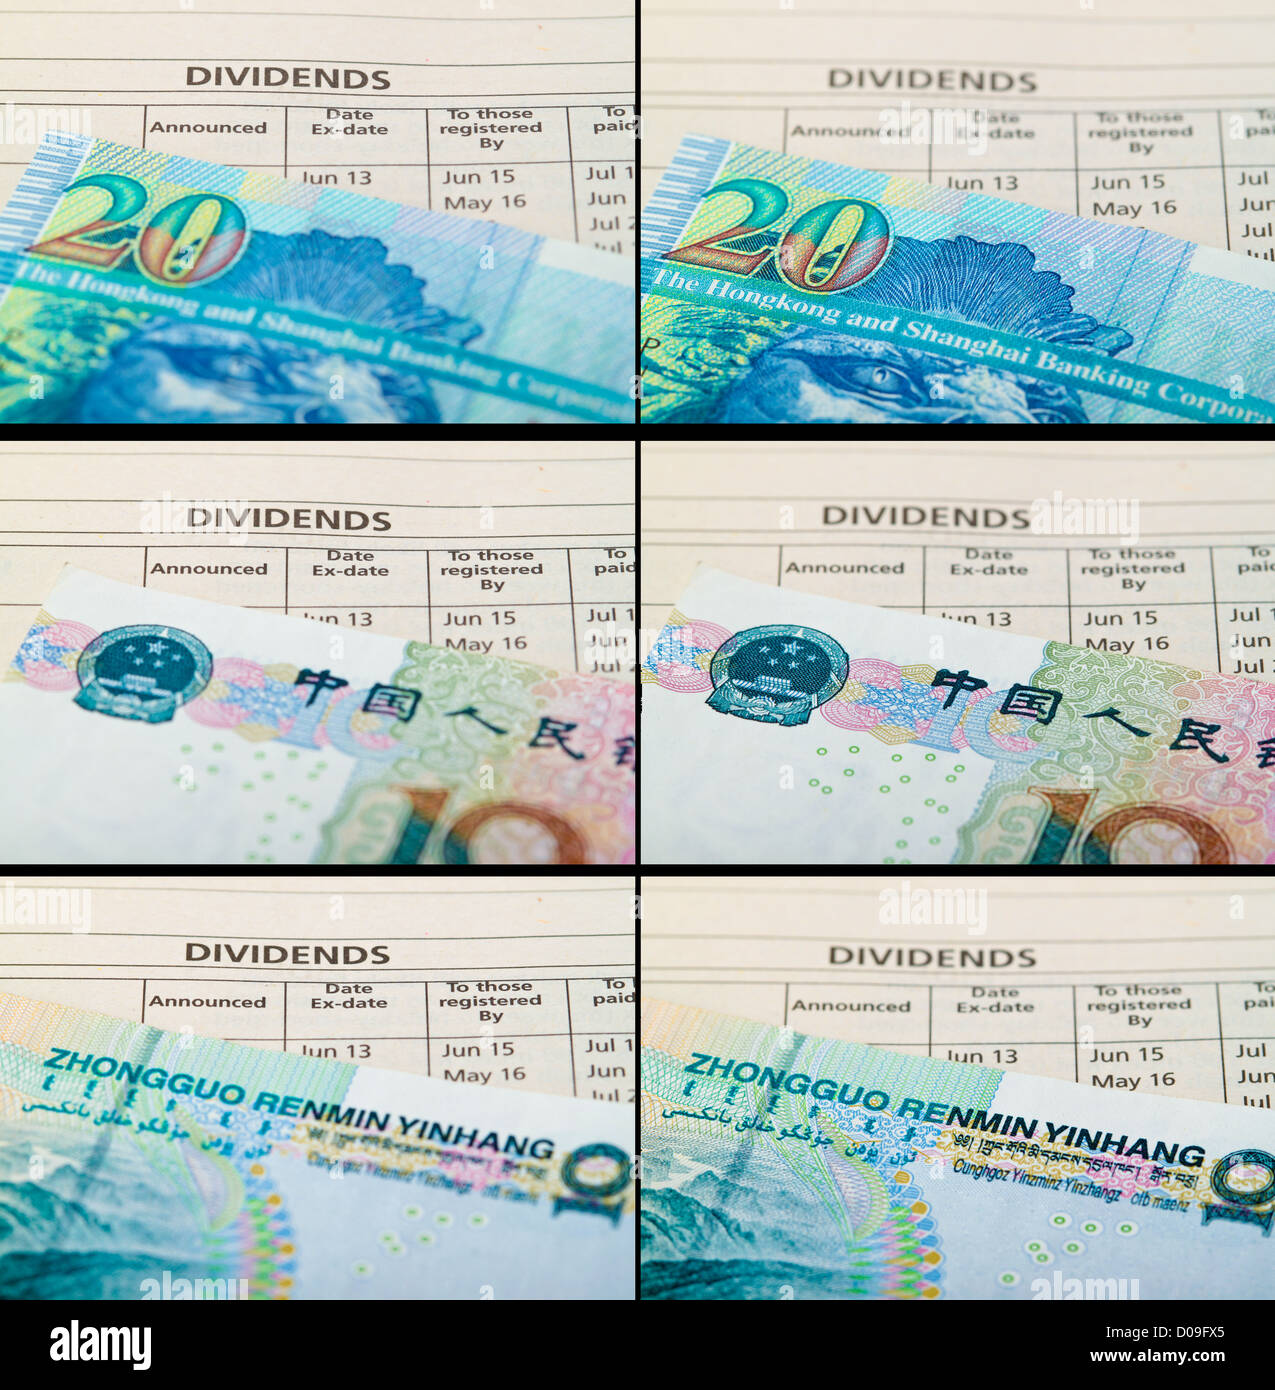 Dividend payout announcement.Concept of return on investment. - Stock Image